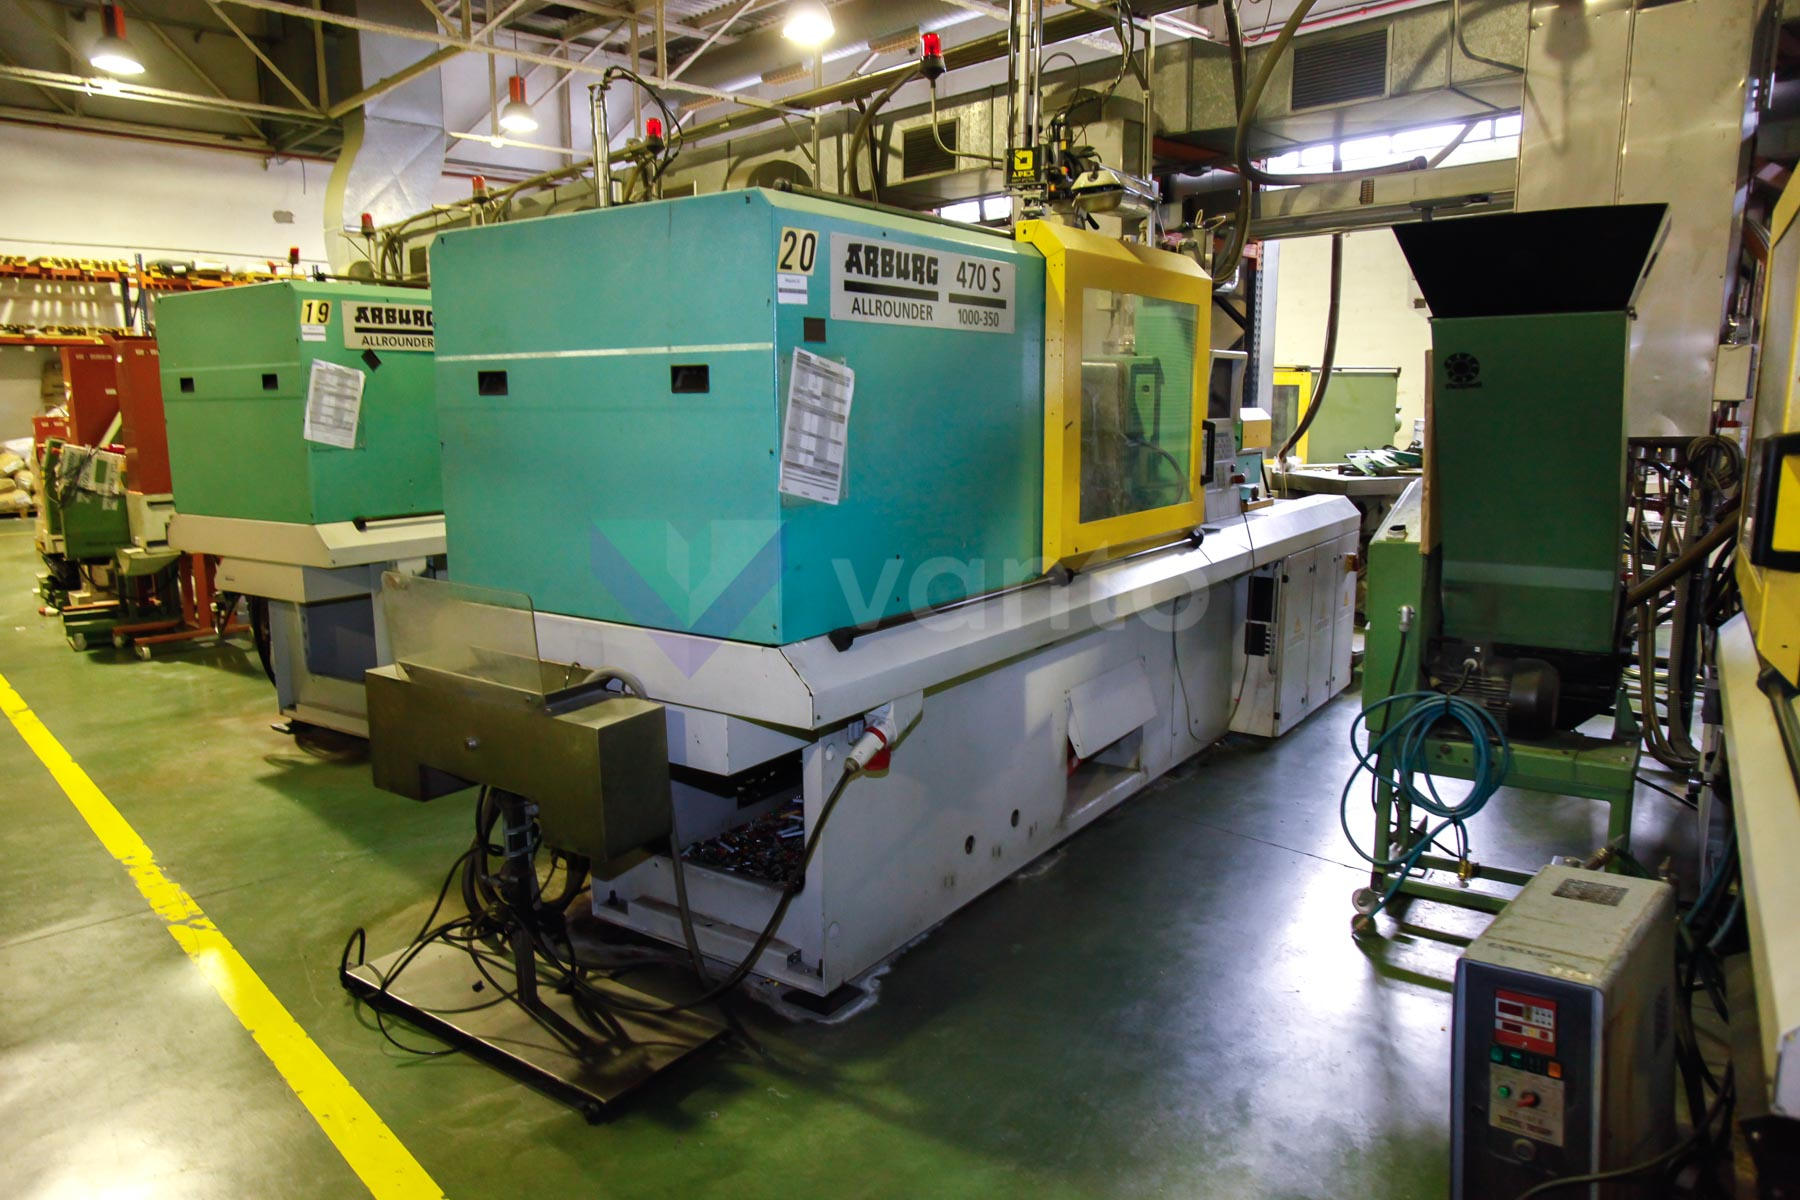 ARBURG 470 S ALLROUNDER 1000 - 350 100t injection molding machine (2002) id4541